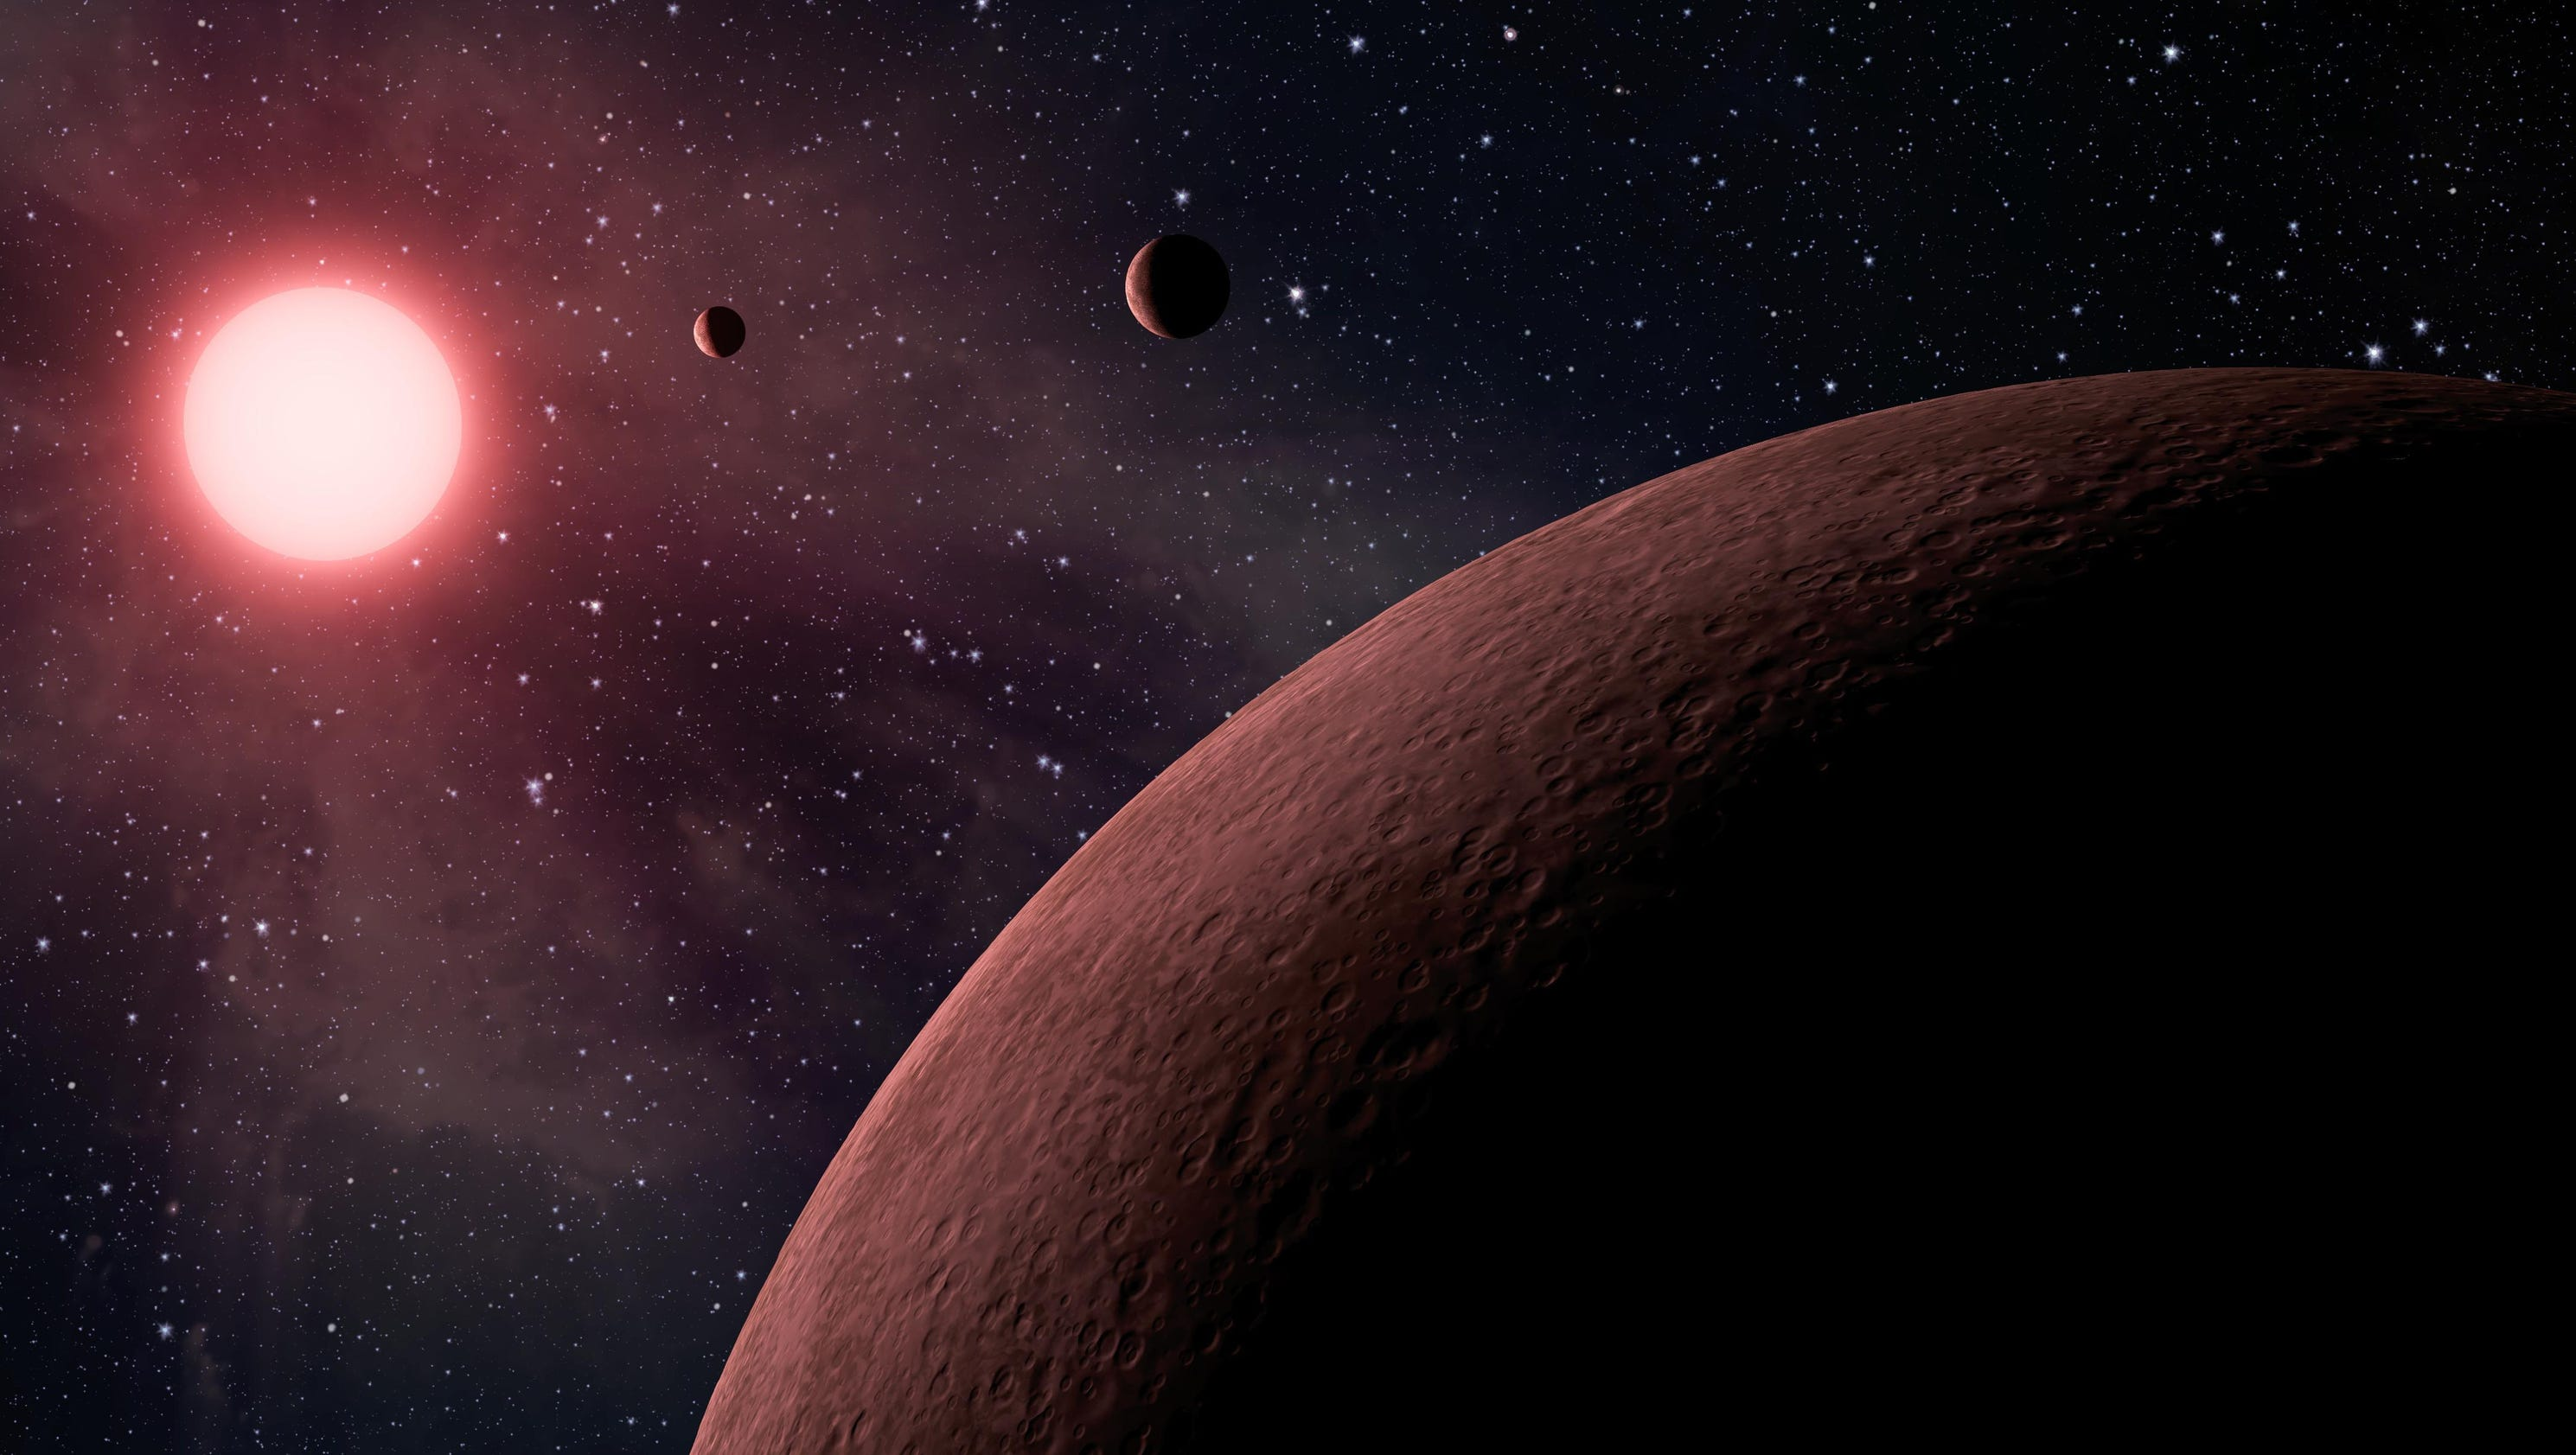 NASA reveals 10 new planets that could have life discovered